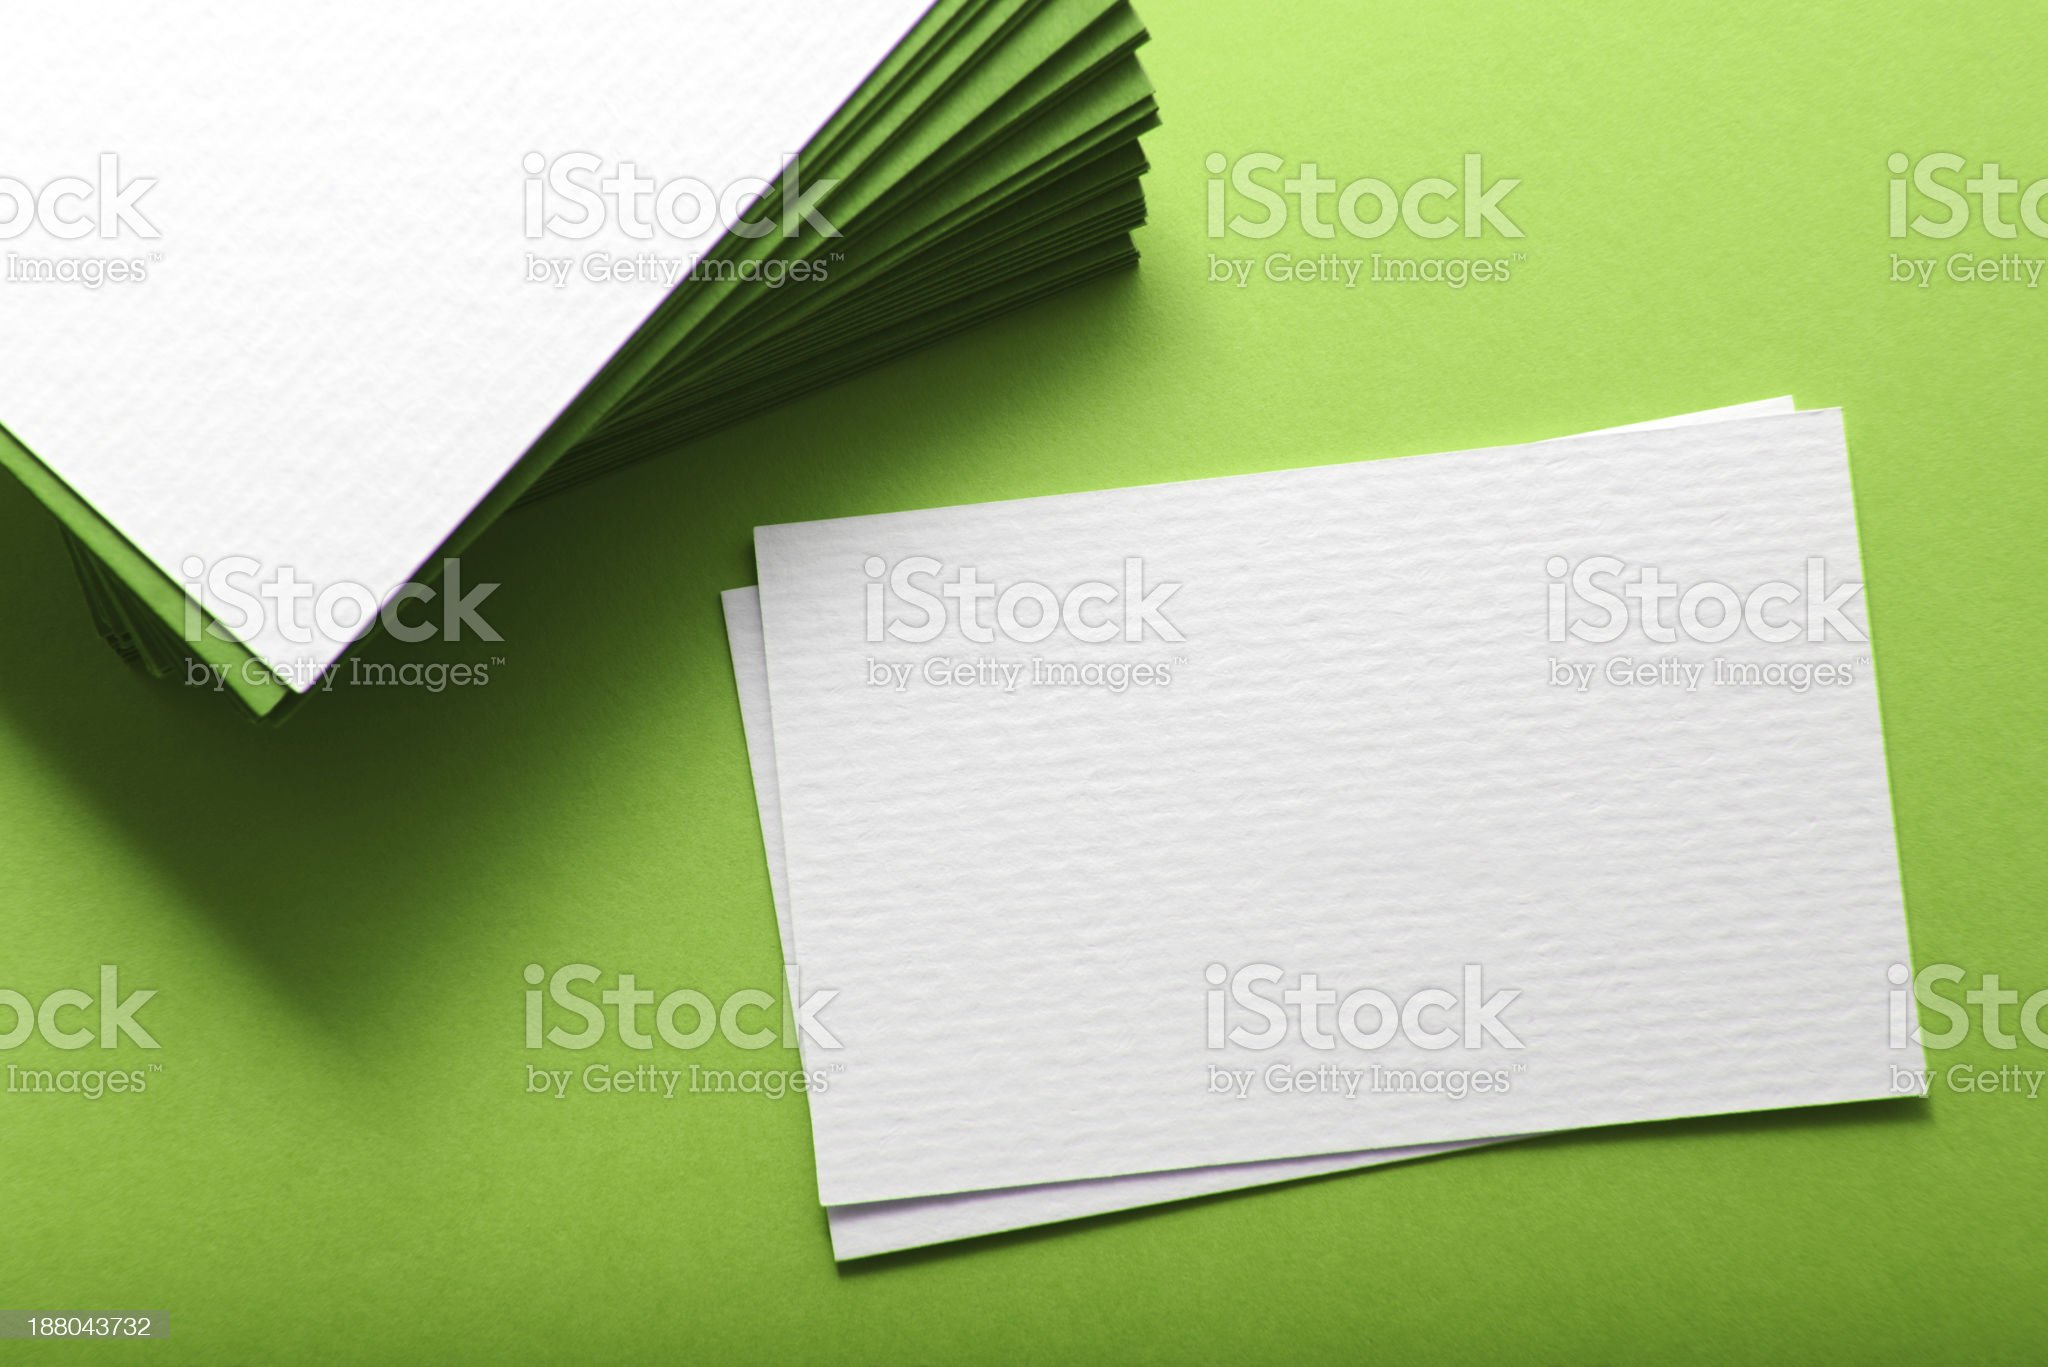 Business cards royalty-free stock photo